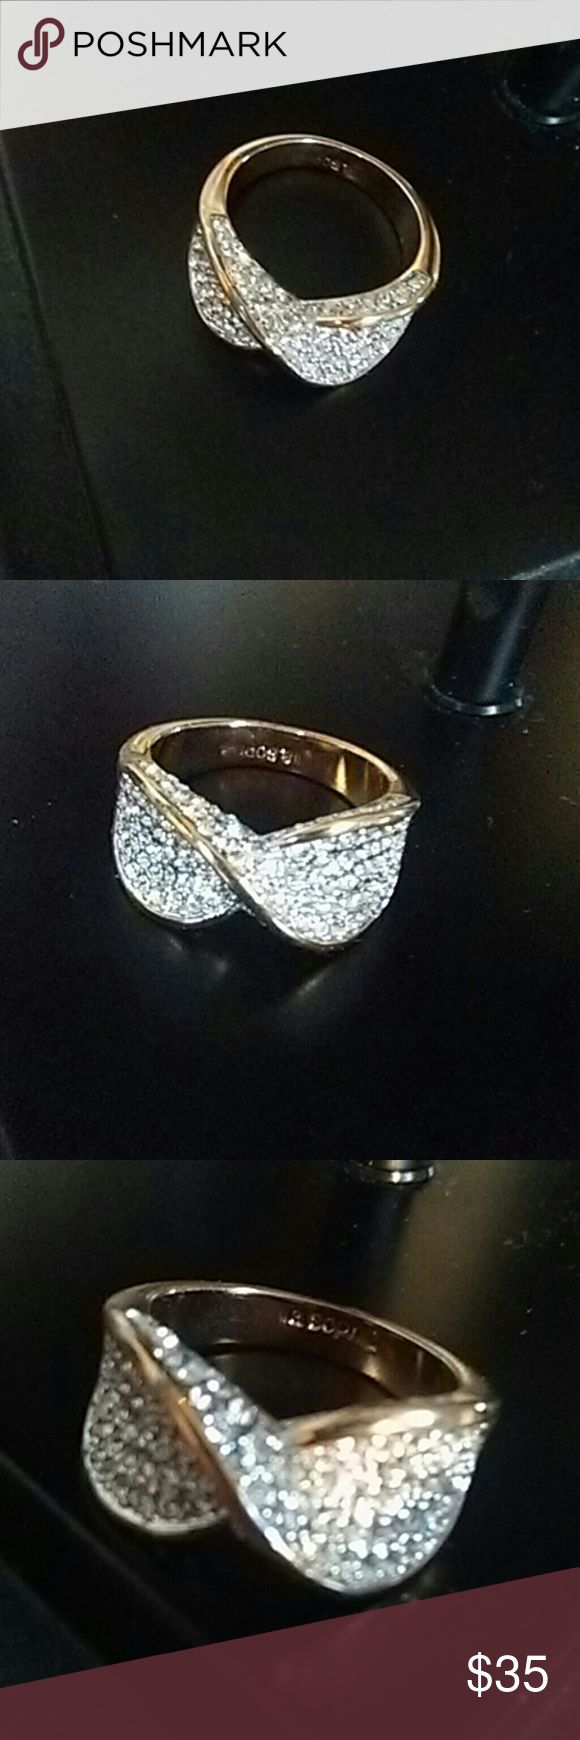 Lia Sophia diamond encrusted cocktail ring Lia Sophia CZ and gold cocktail ring. Swirl design. Size 7. Brand New Condition. Beautiful!  Doesn't fit any of my fingers. This flawless ring is perfect for any occasion! Lia Sophia Jewelry Rings